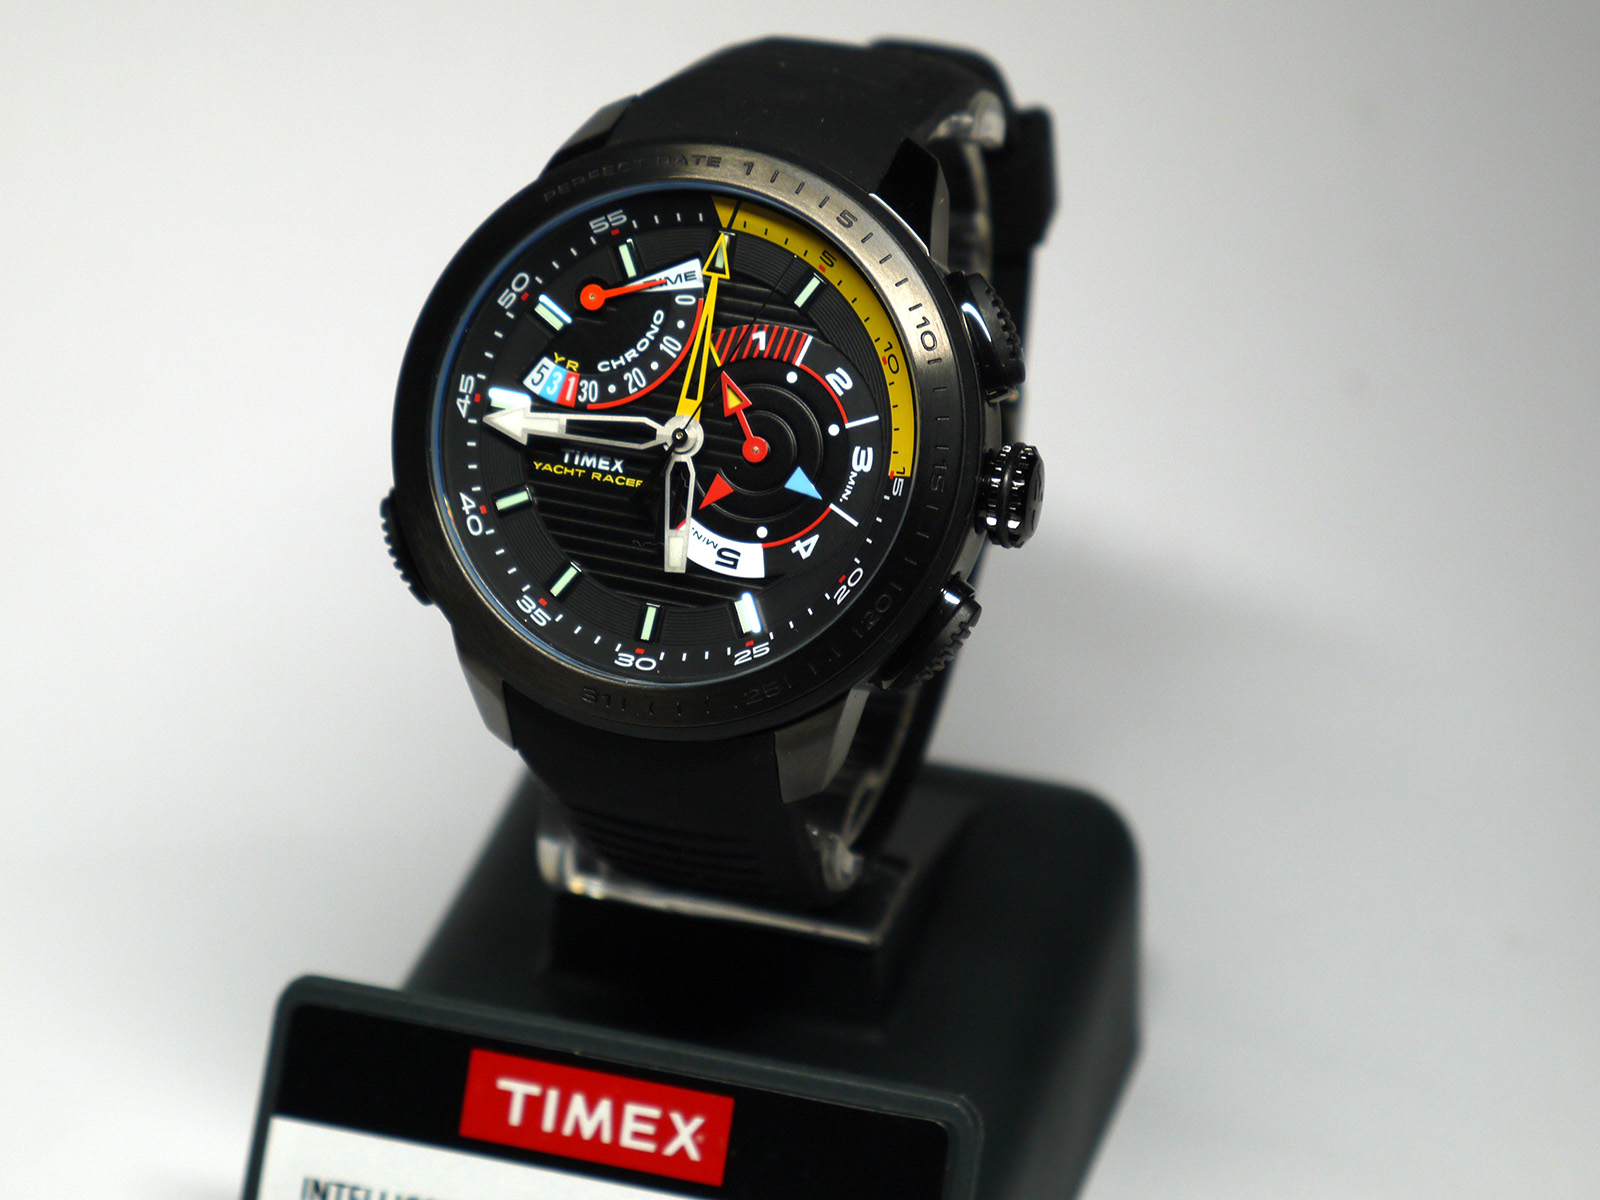 Timex Tw2p44300 Yacht Racer Watch ⋆ High Quality Watch Gallery